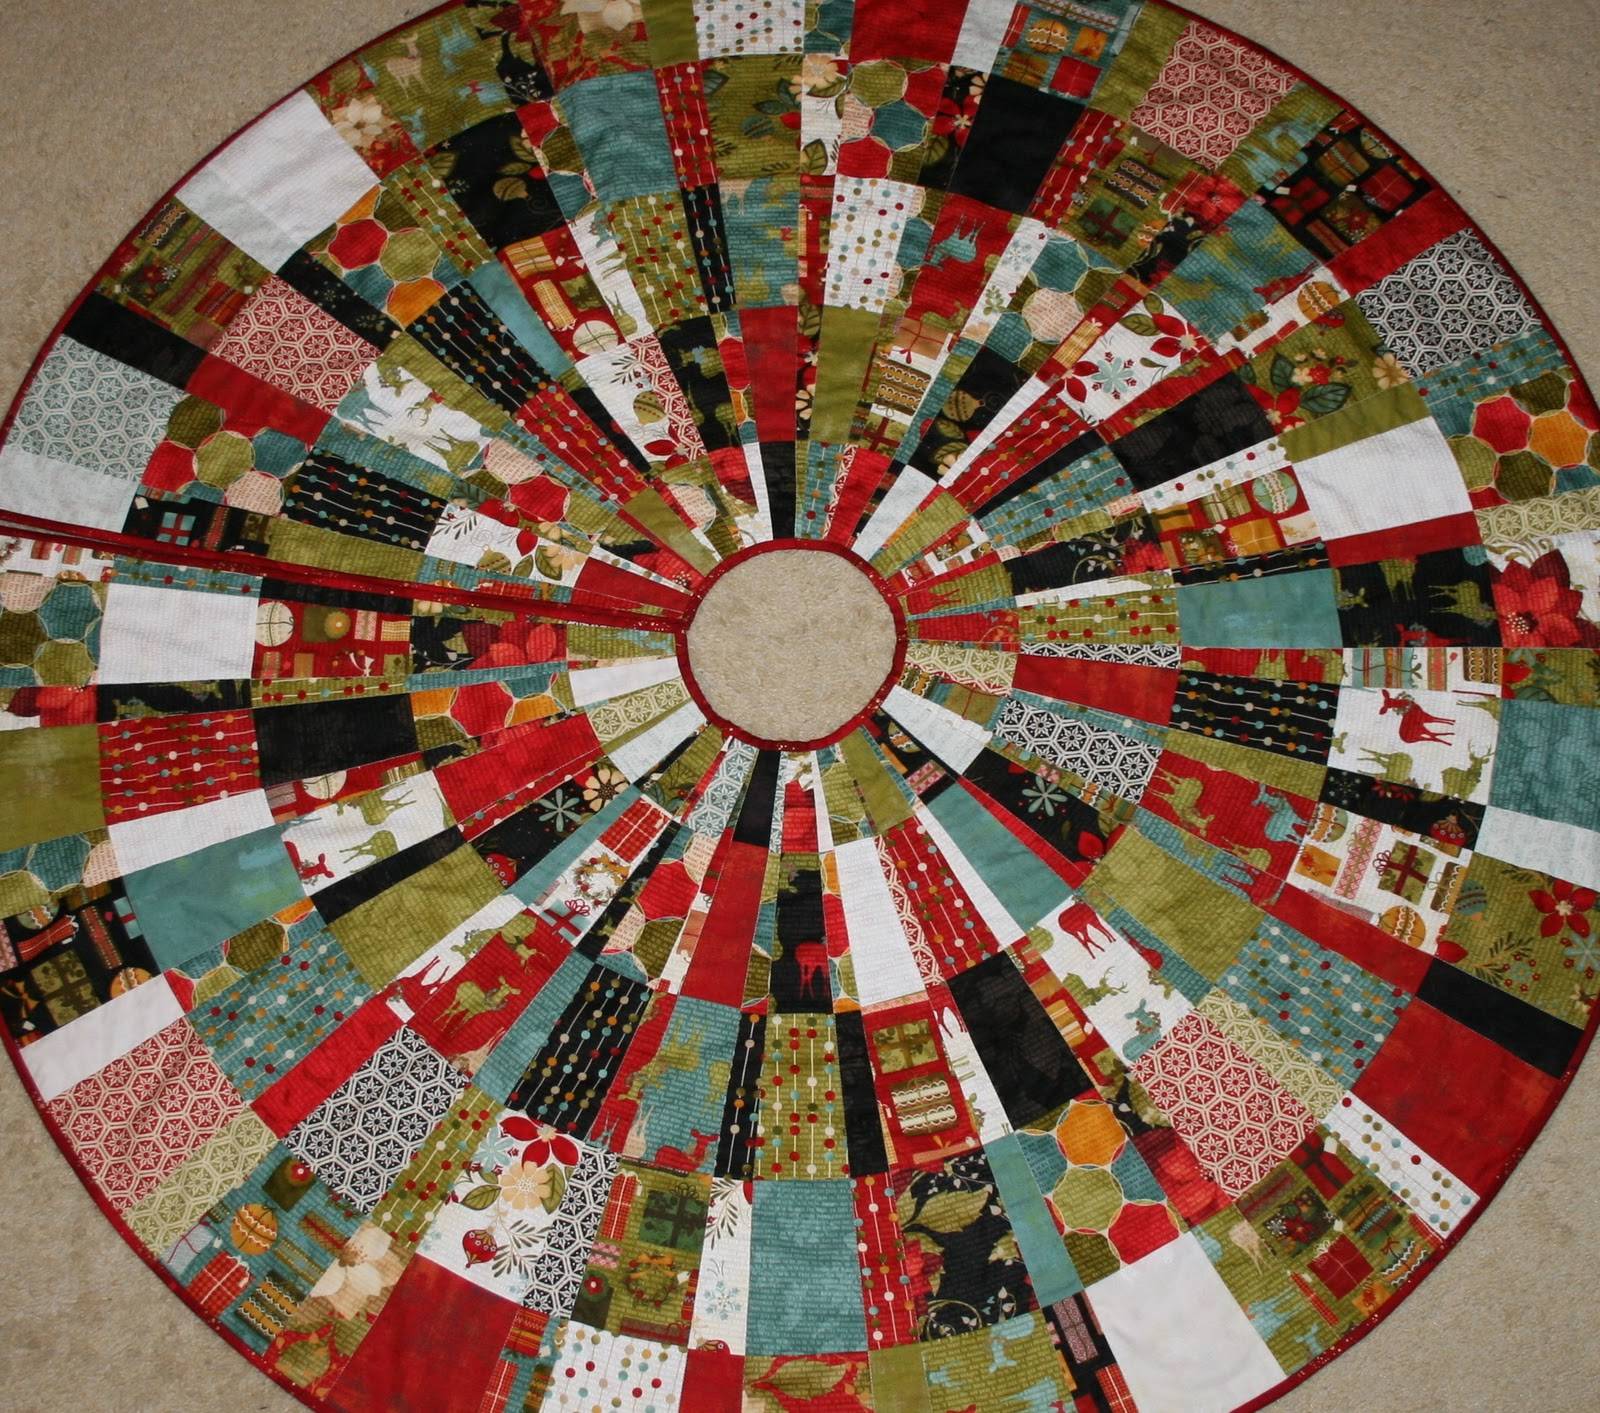 20 Free Quilted Christmas Tree Skirt Patterns | Guide Patterns : christmas tree skirt pattern quilt free - Adamdwight.com